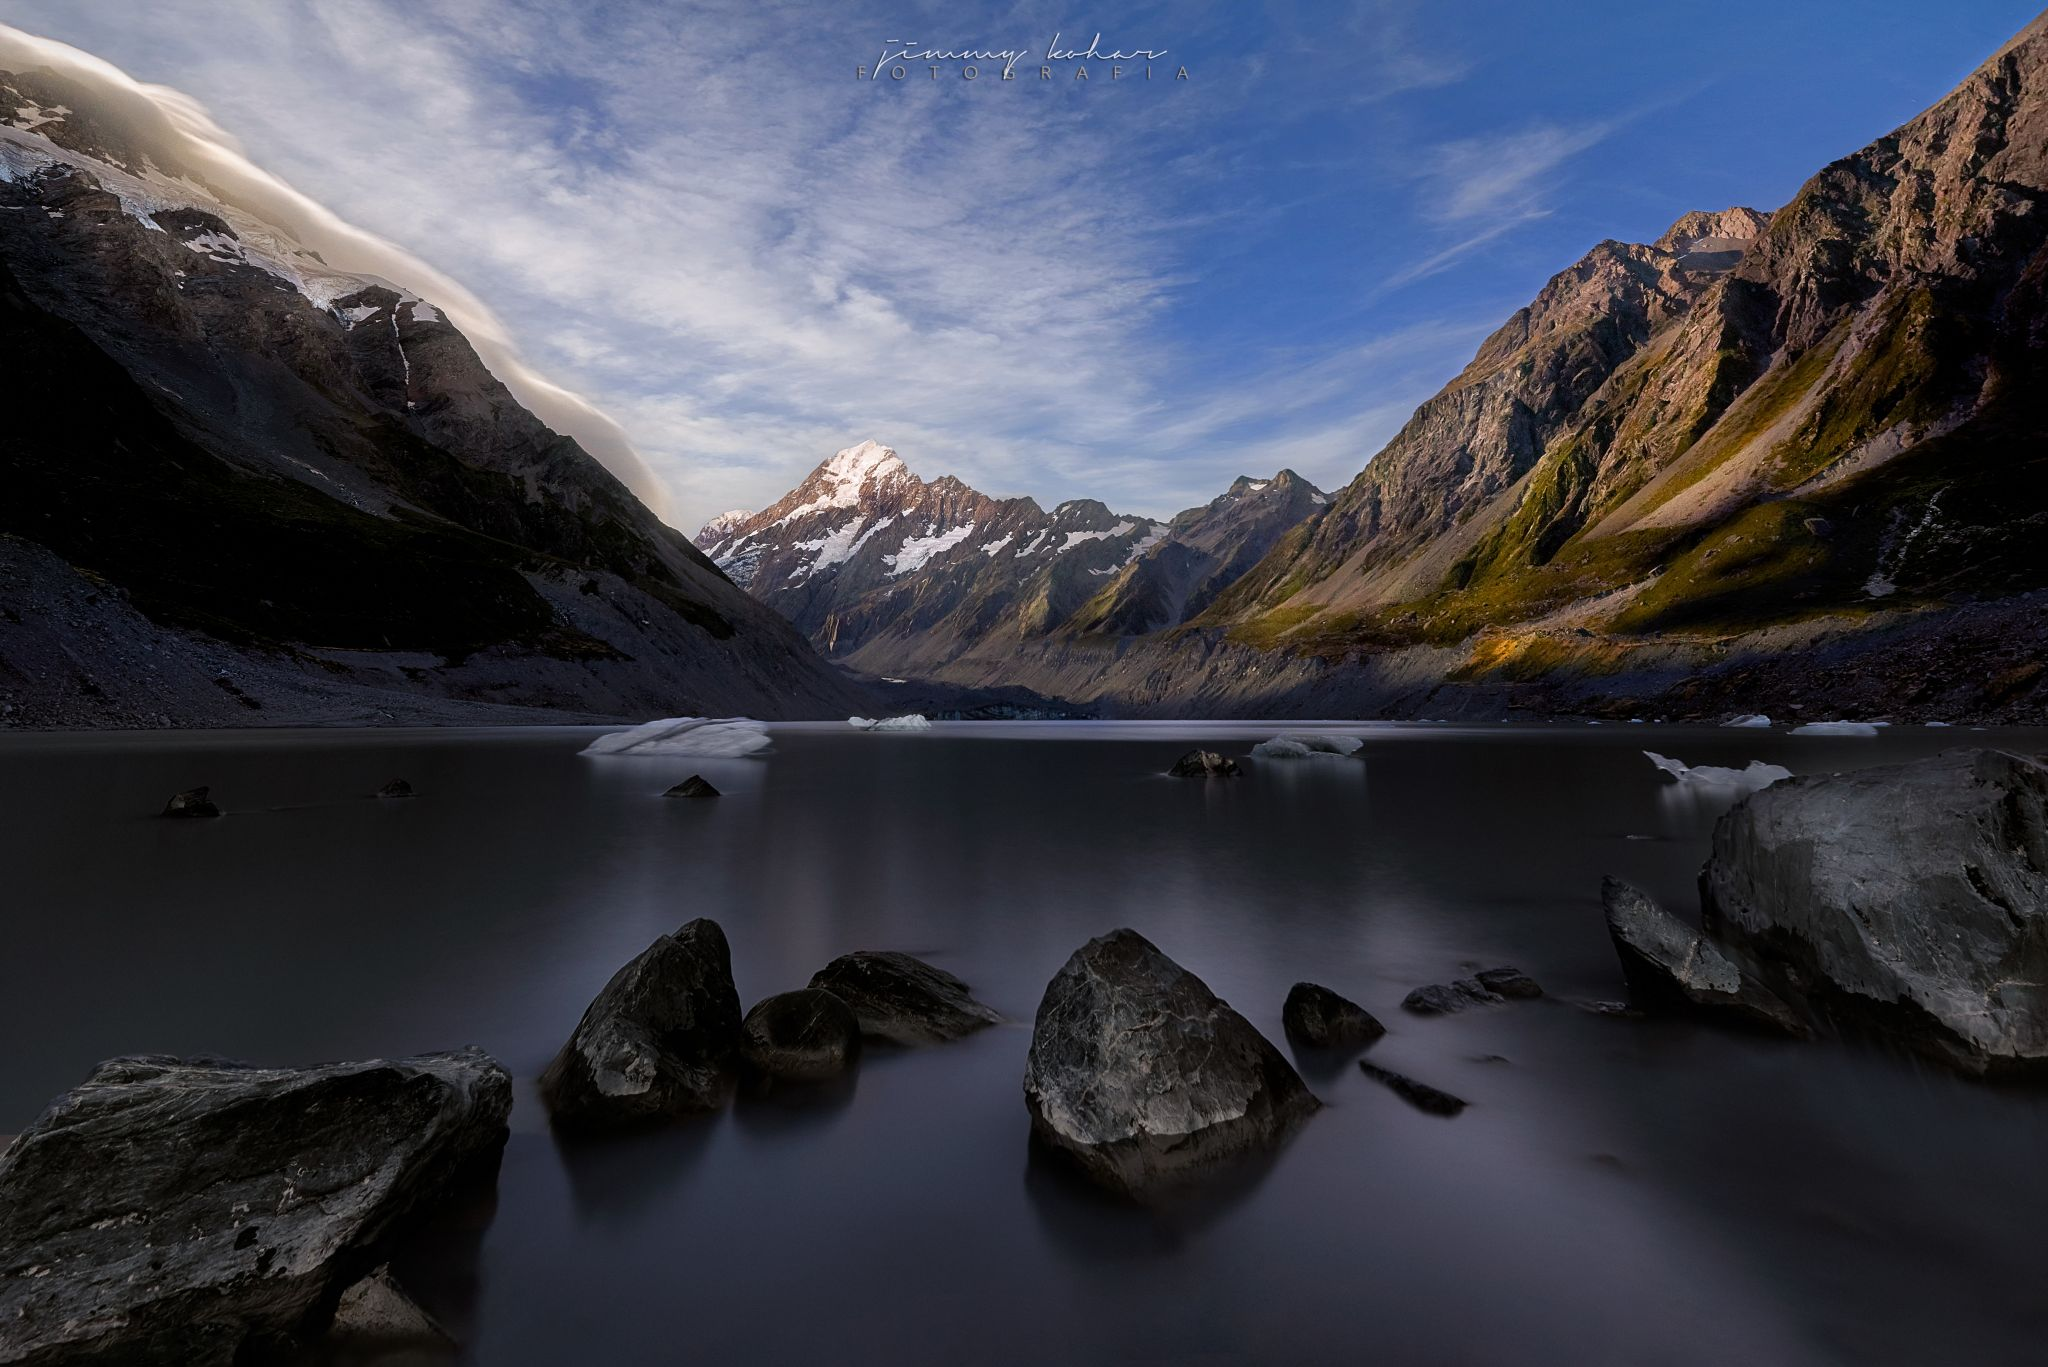 Mt. Cook from Hooker Lake, New Zealand